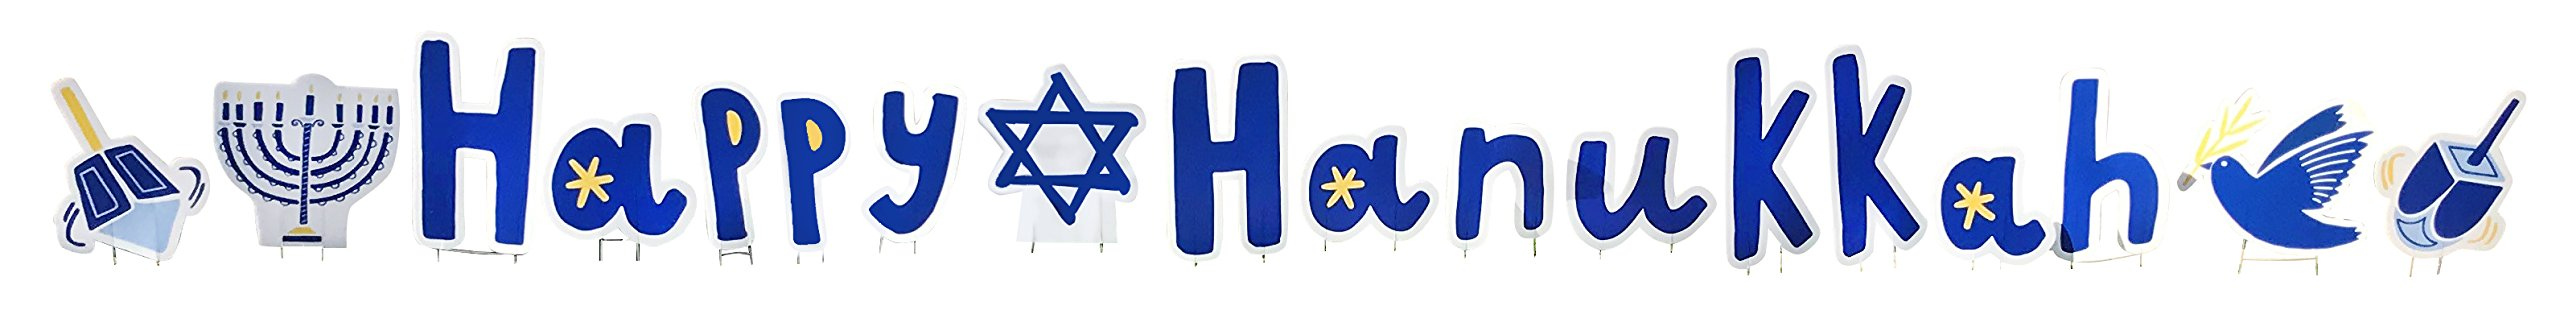 Happy Hanukkah - Advanced Graphics Outdoor Life Size Standup Yard Sign - For Outdoor Use